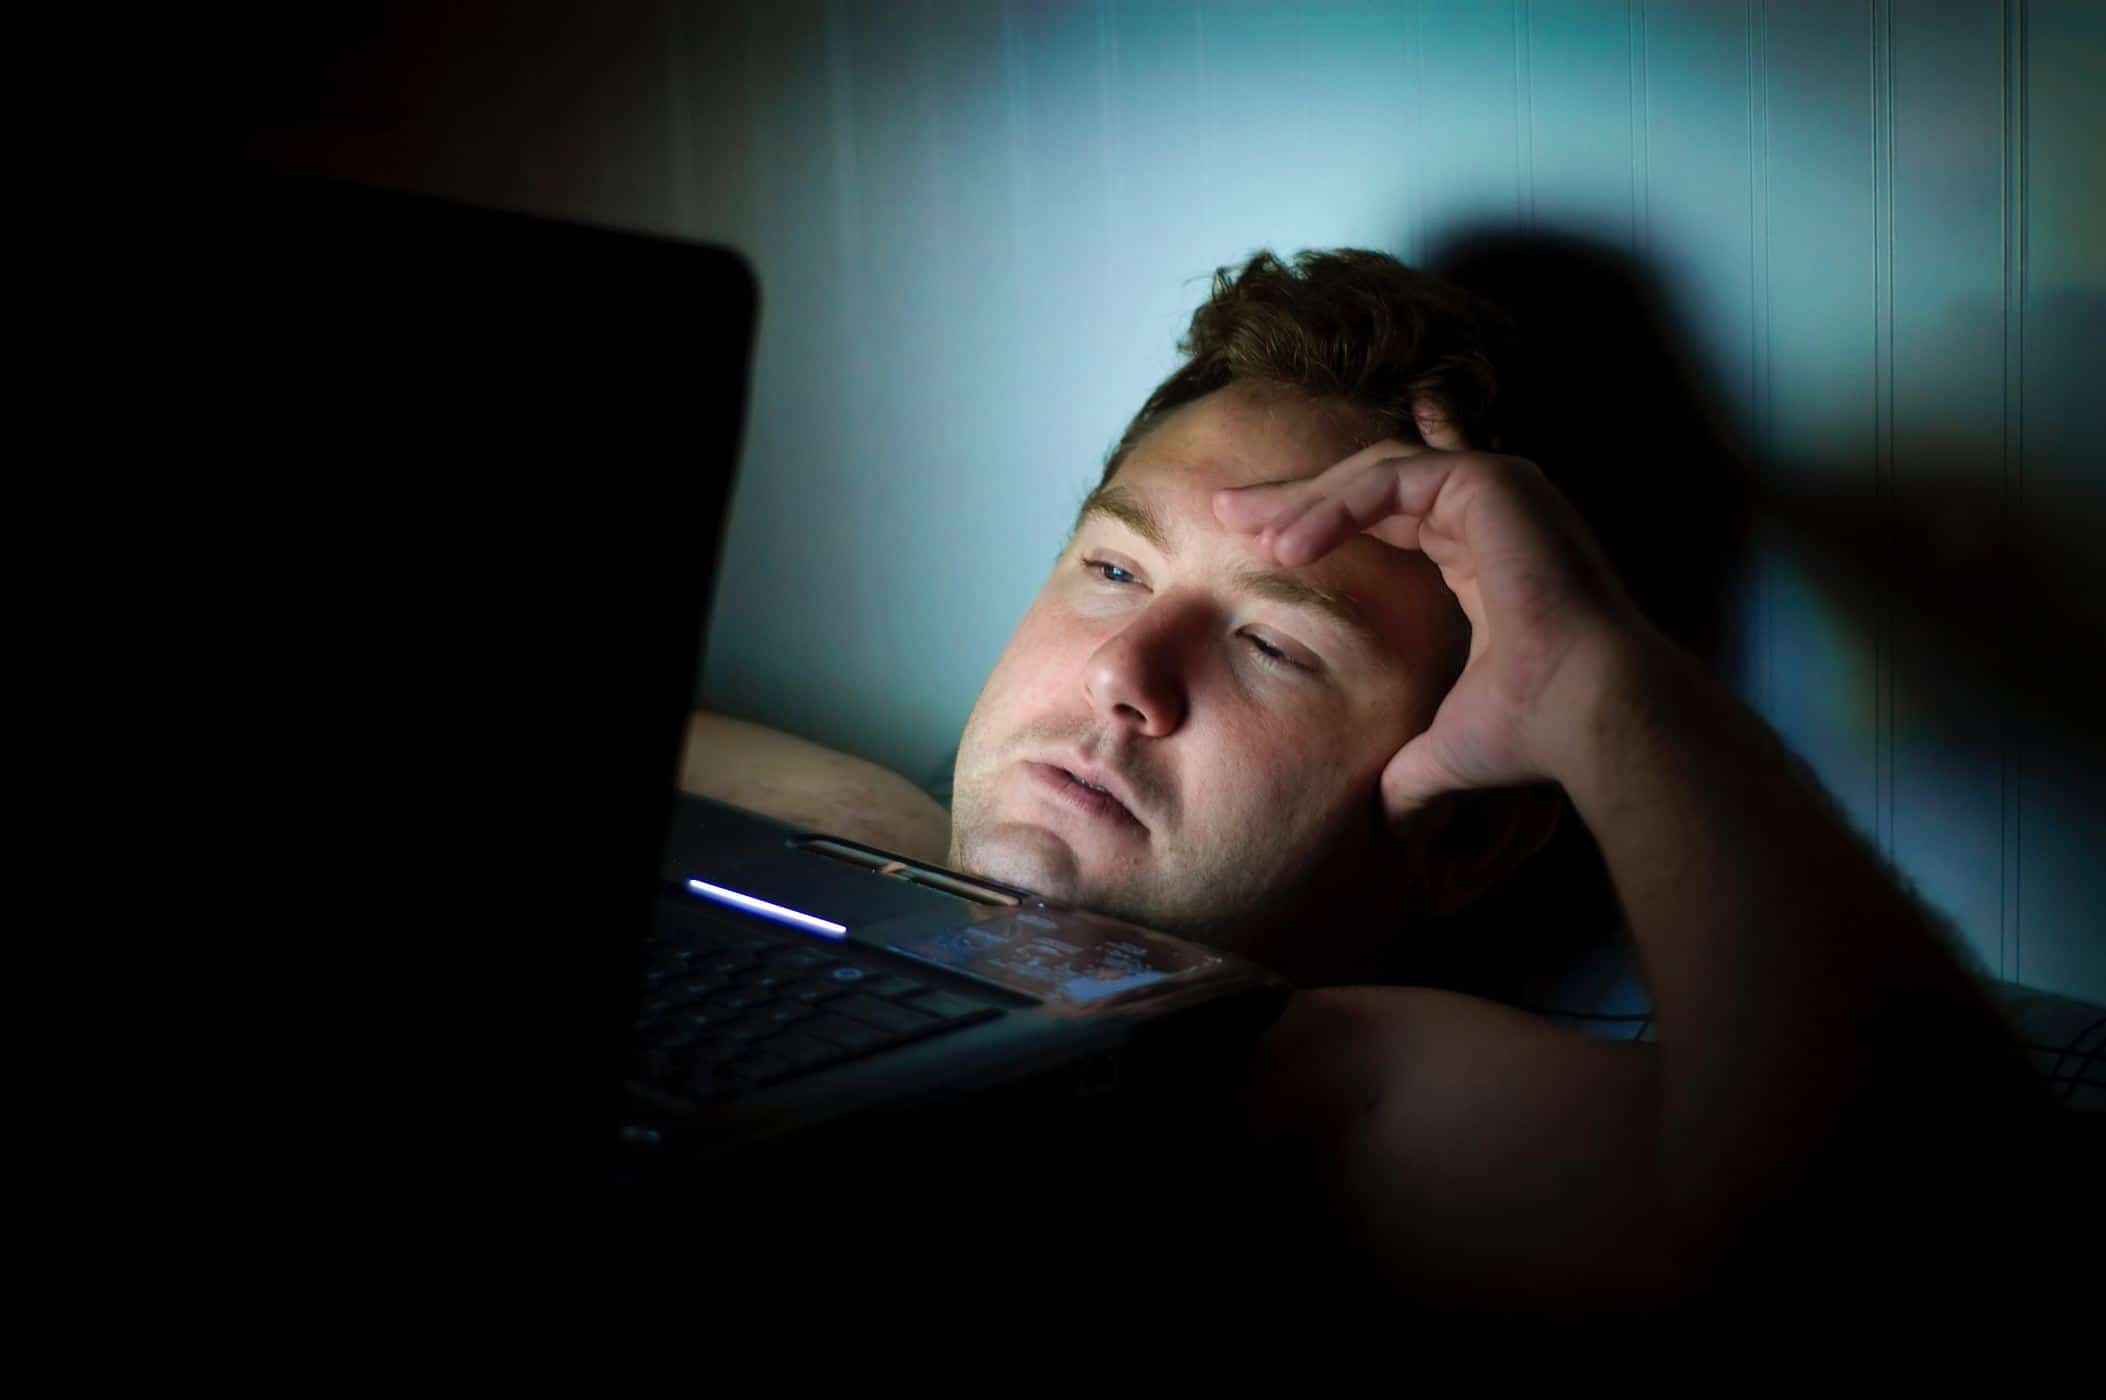 Man looking at computer screen worrying about travel insurance.